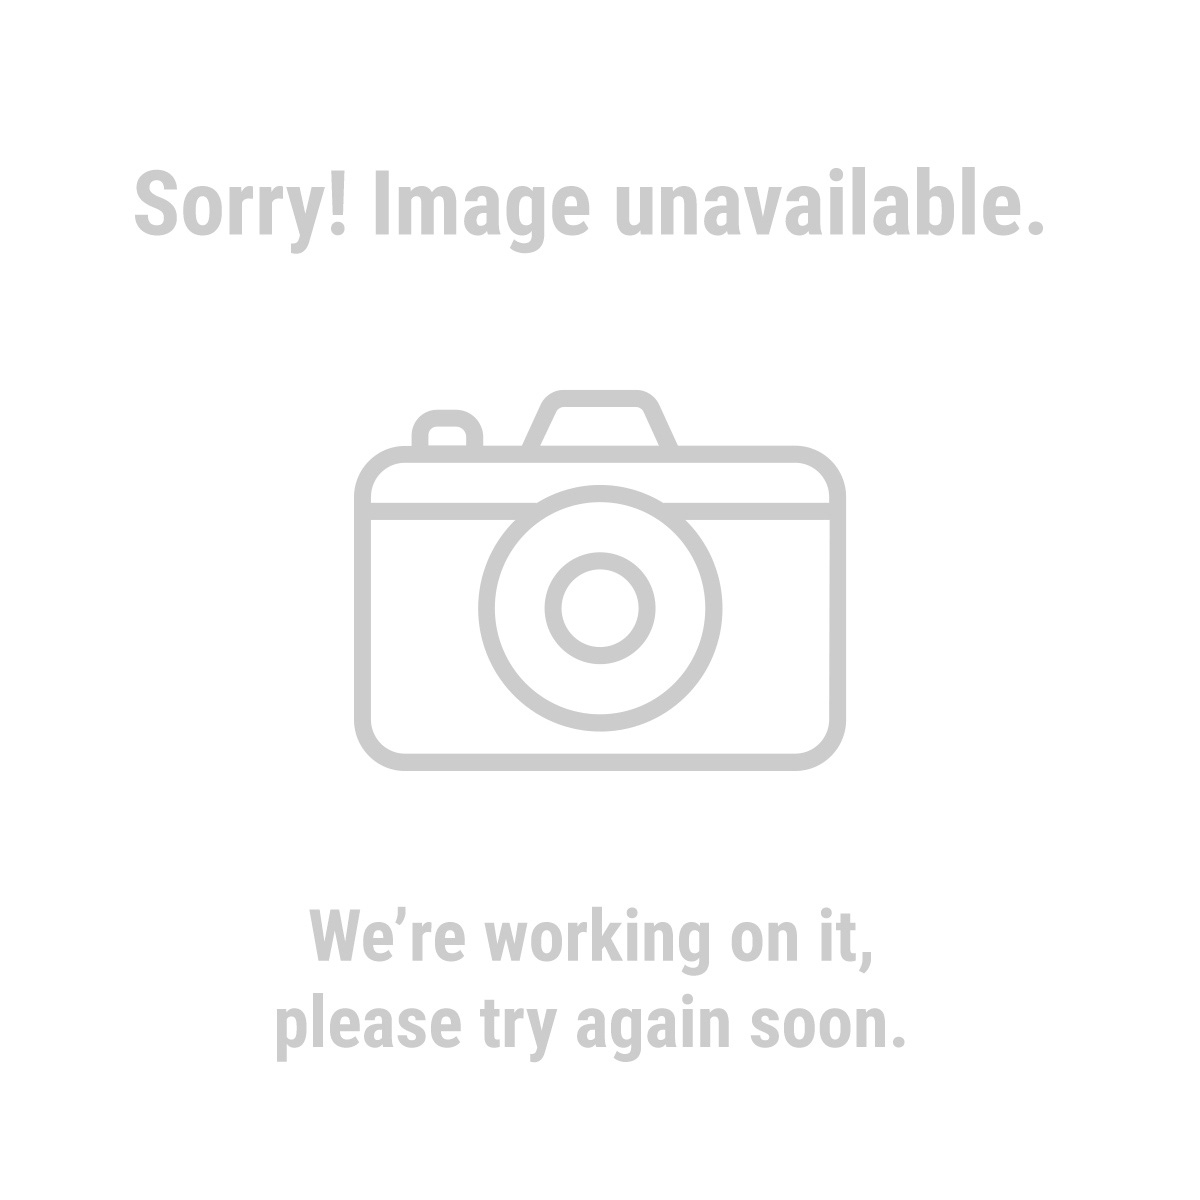 New 50 feet of spring steel cable fish tape wire puller for How to fish wire through insulated wall